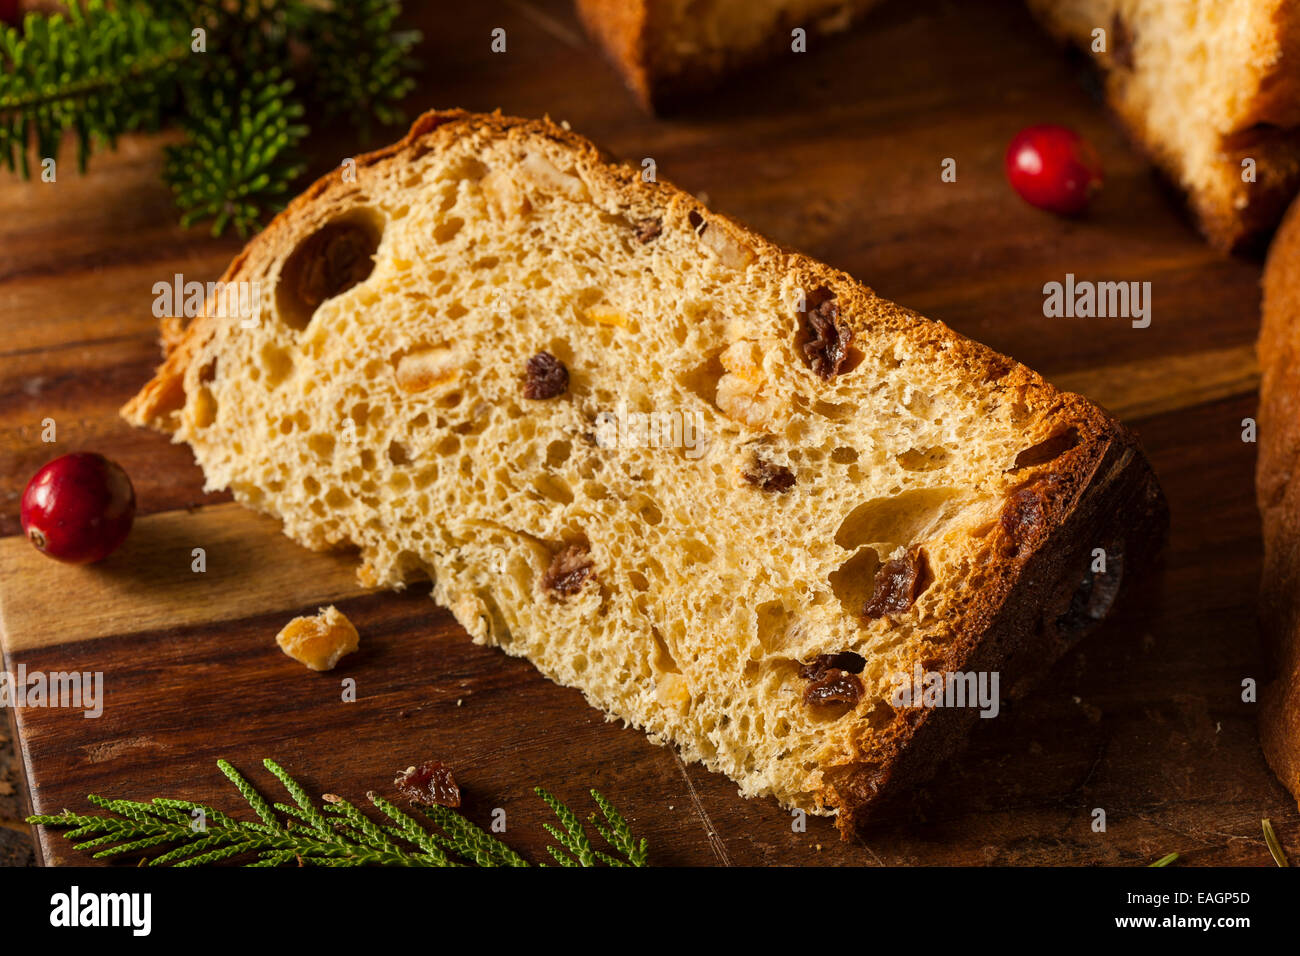 Homemade Panettone Fruit Cake Ready for Christmas - Stock Image